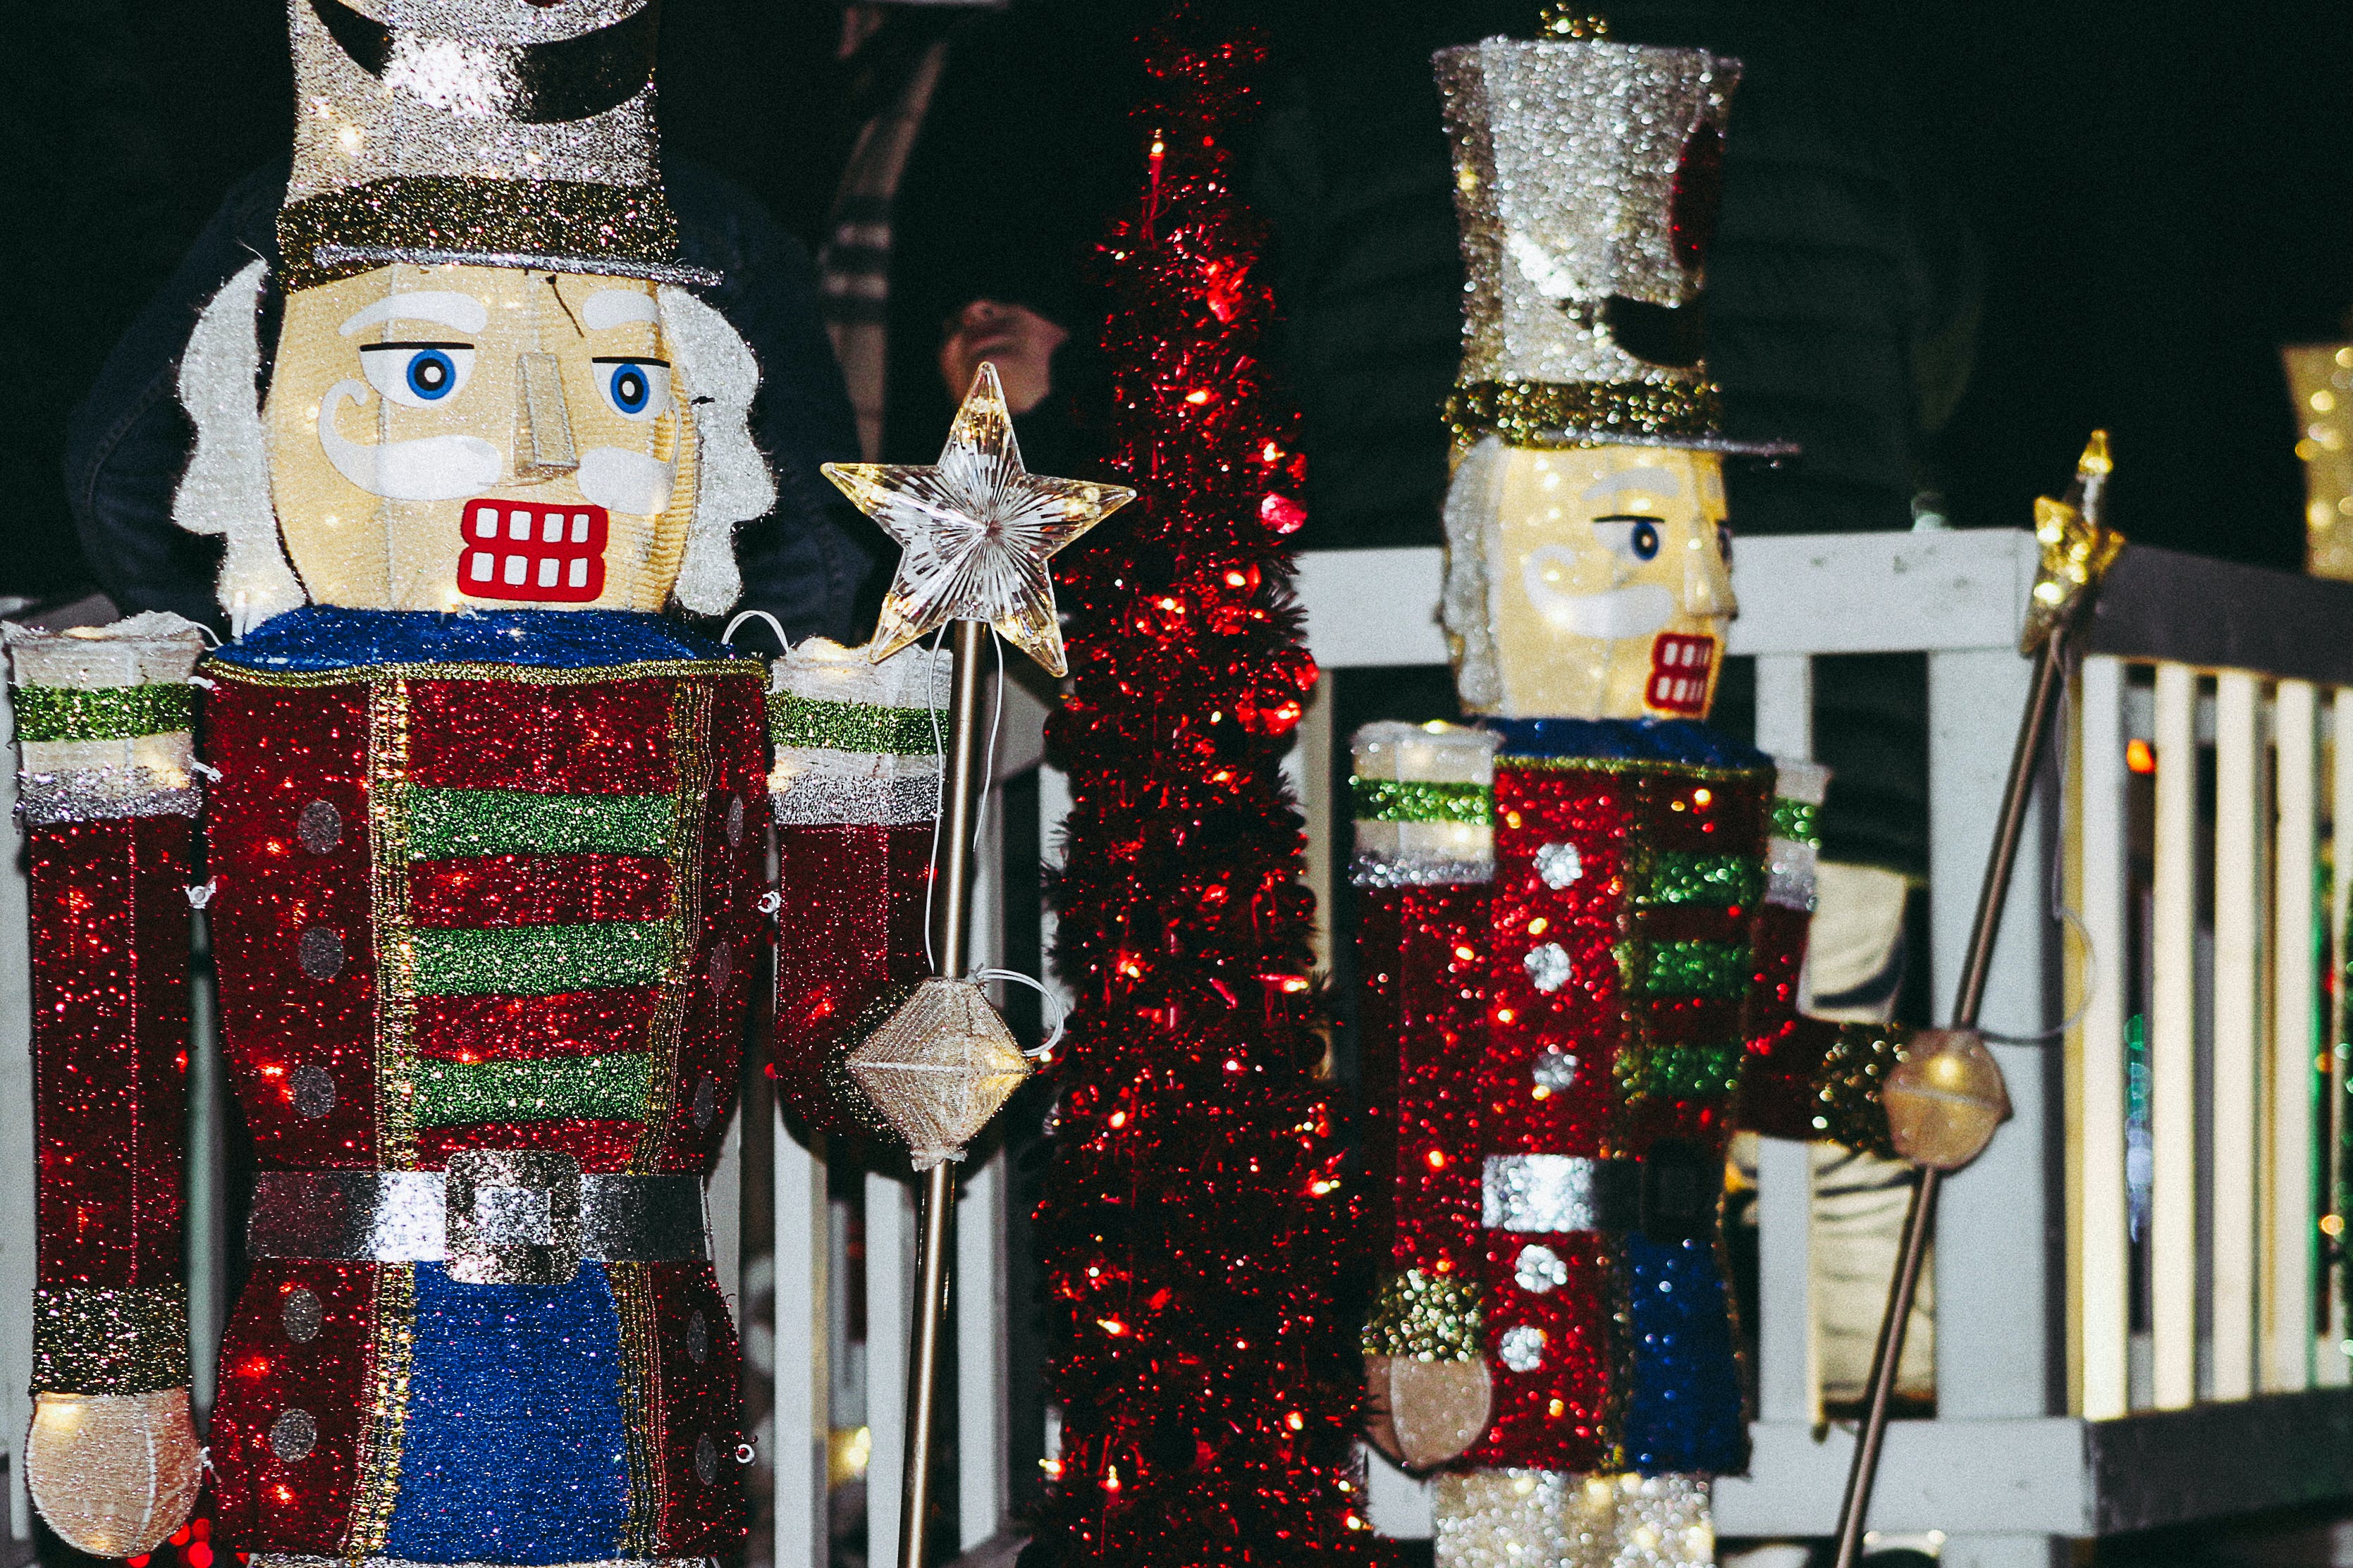 Two Nutcracker Figurine Near Fence